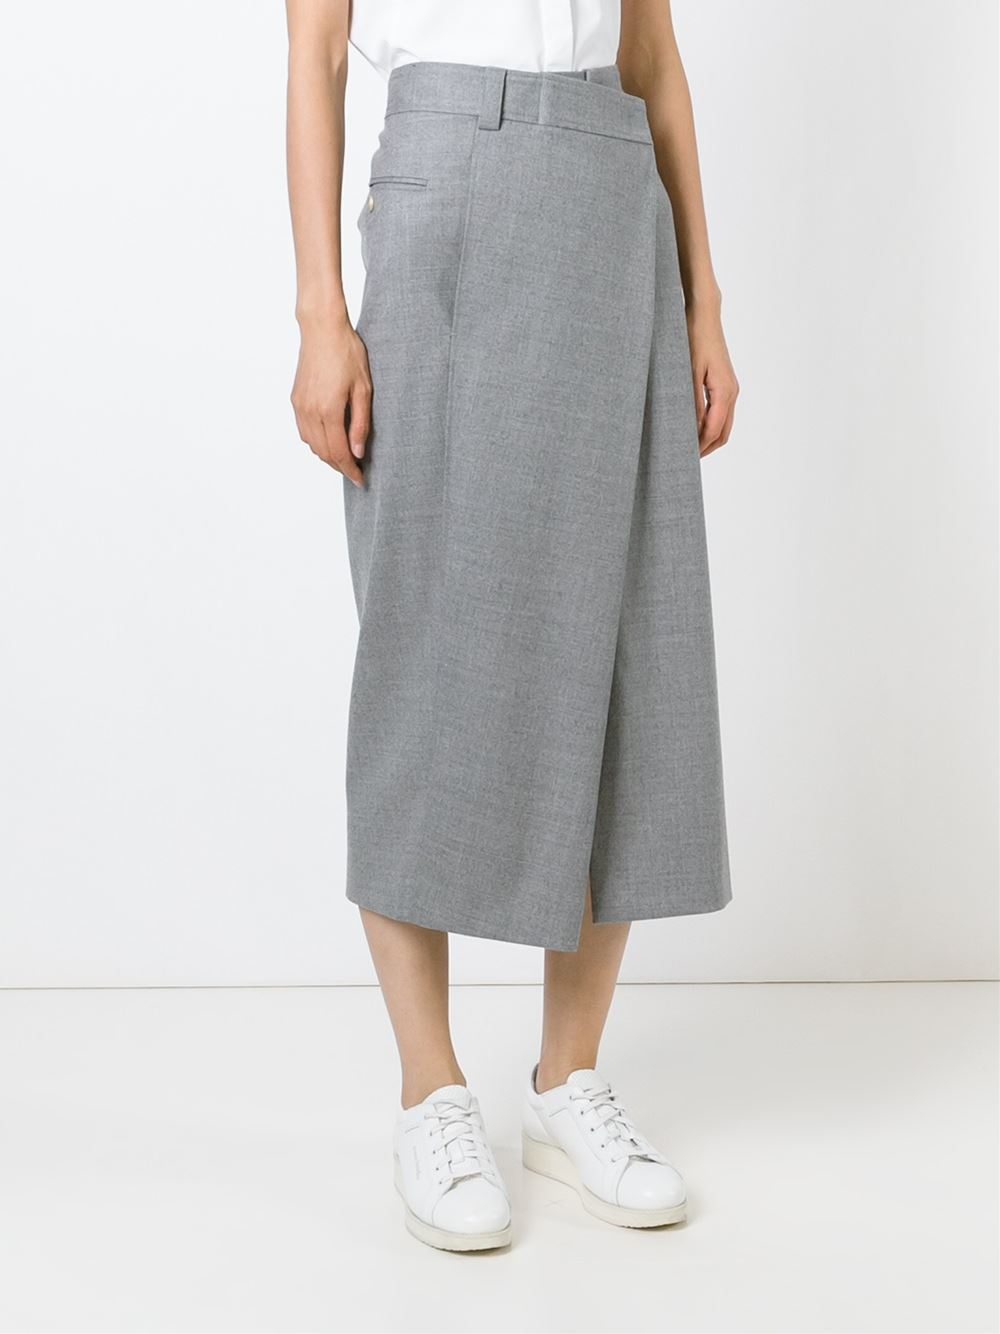 Wrap skirt grey – Modern skirts blog for you